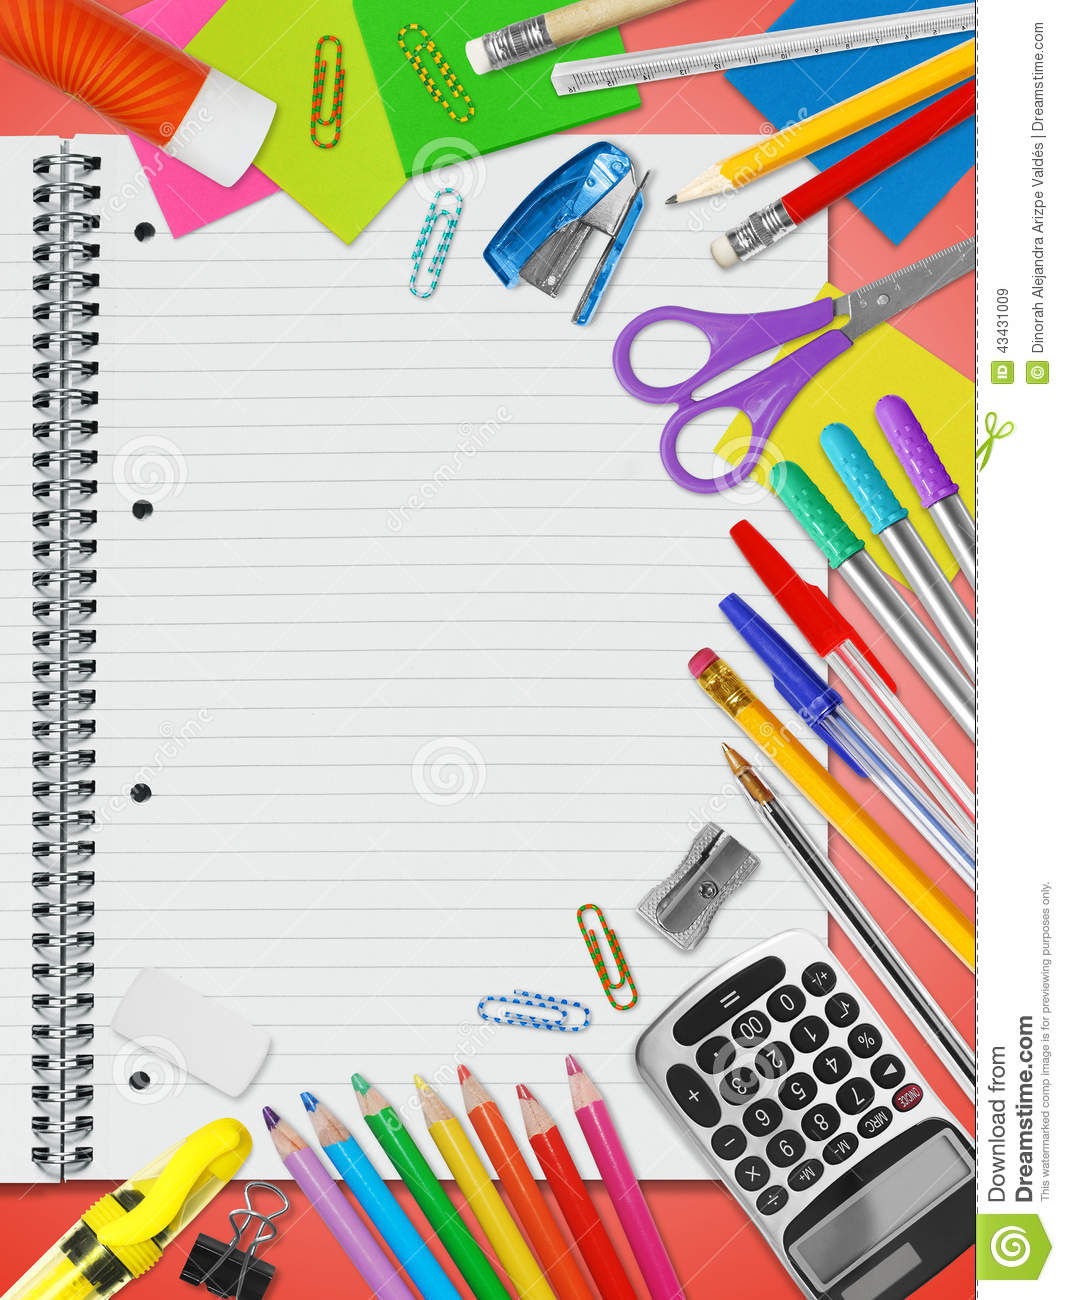 School supplies business plan